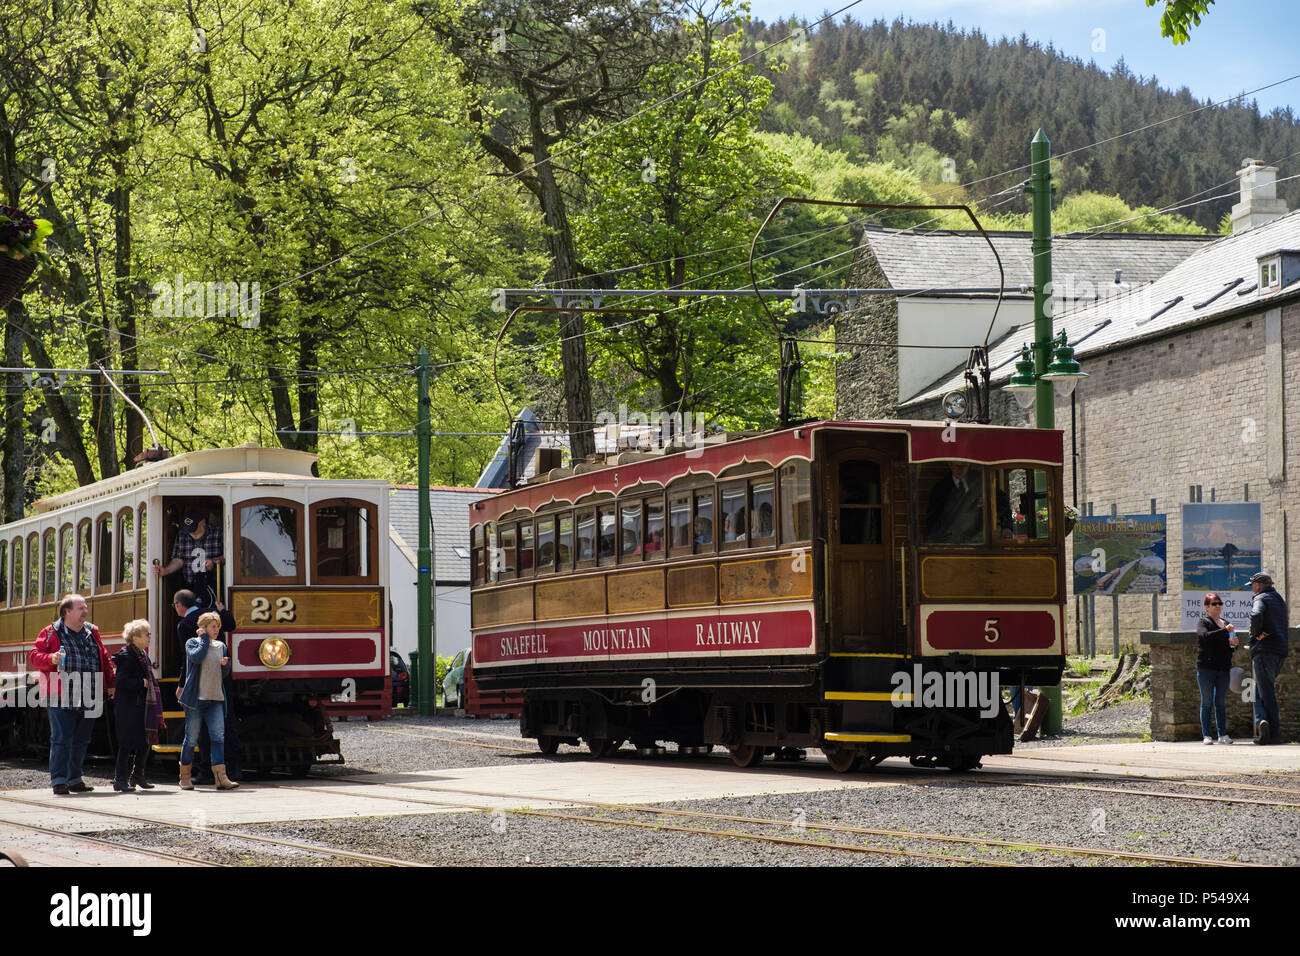 Snaefell Mountain Railway electric railcar carriage number 5 and Manx Electric Railway train 22 in the station in Laxey, Isle of Man, British Isles - Stock Image